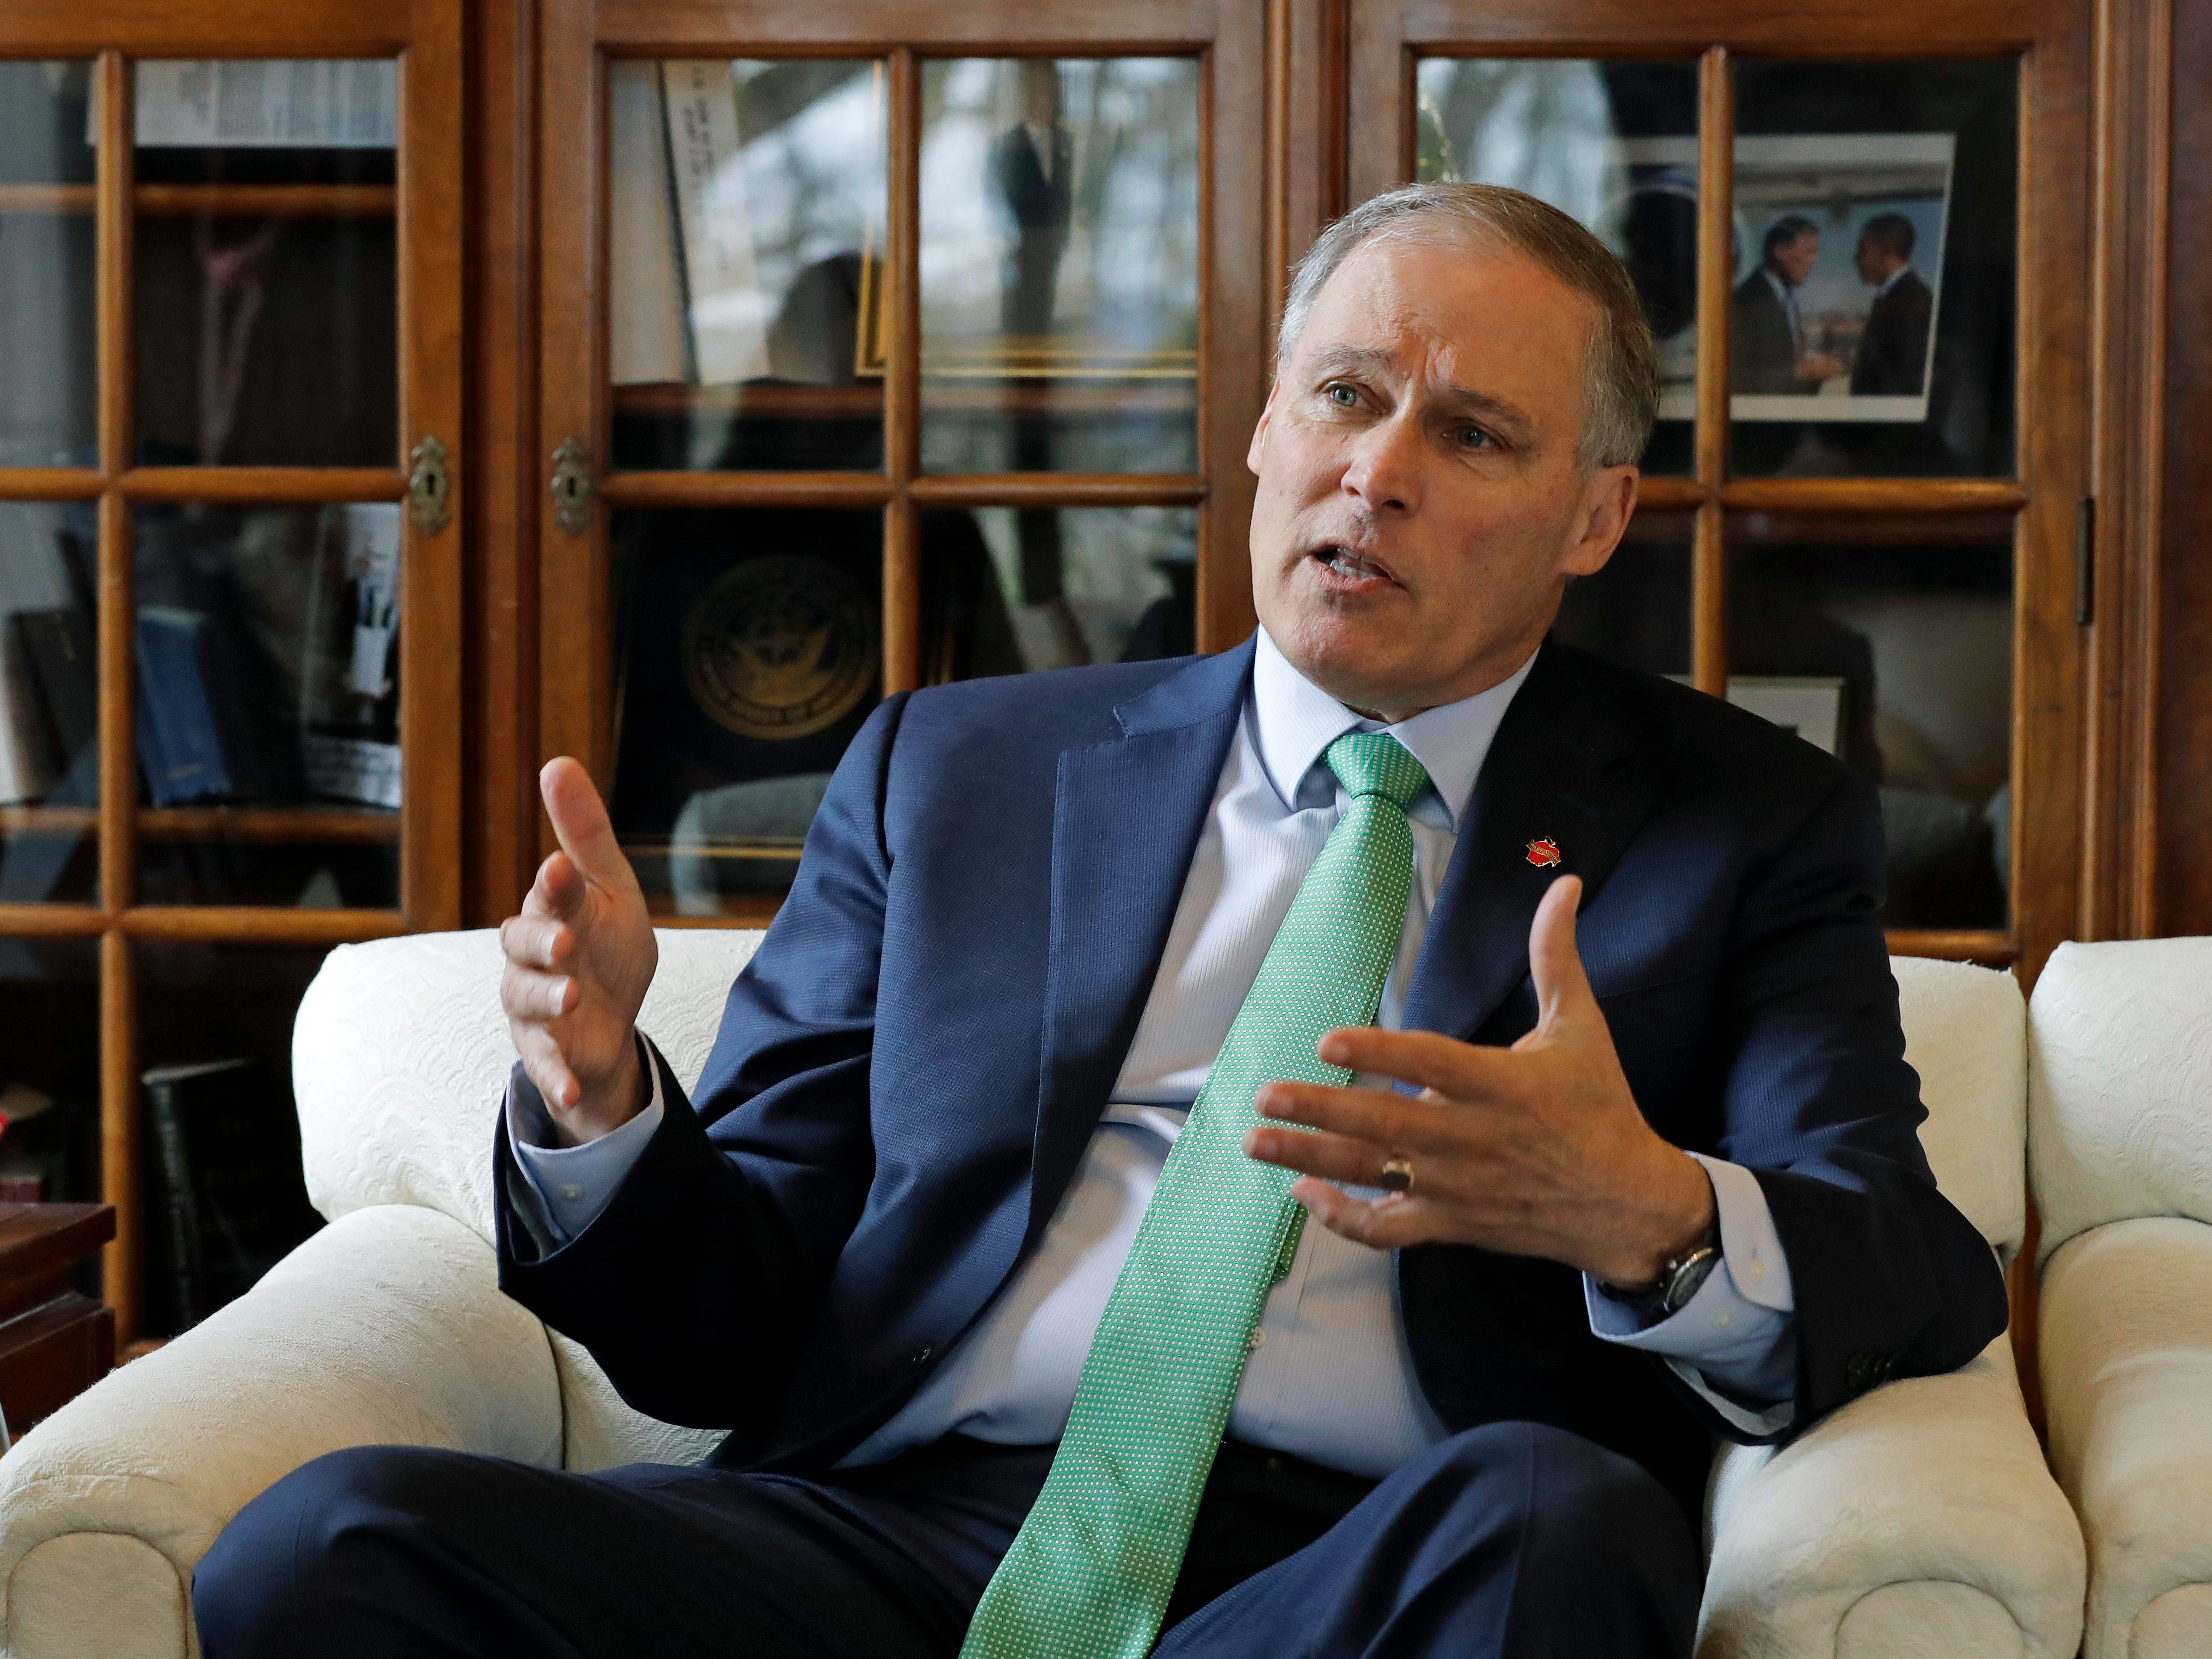 Washington Gov. Jay Inslee announced he is running for president on March 1, 2019.